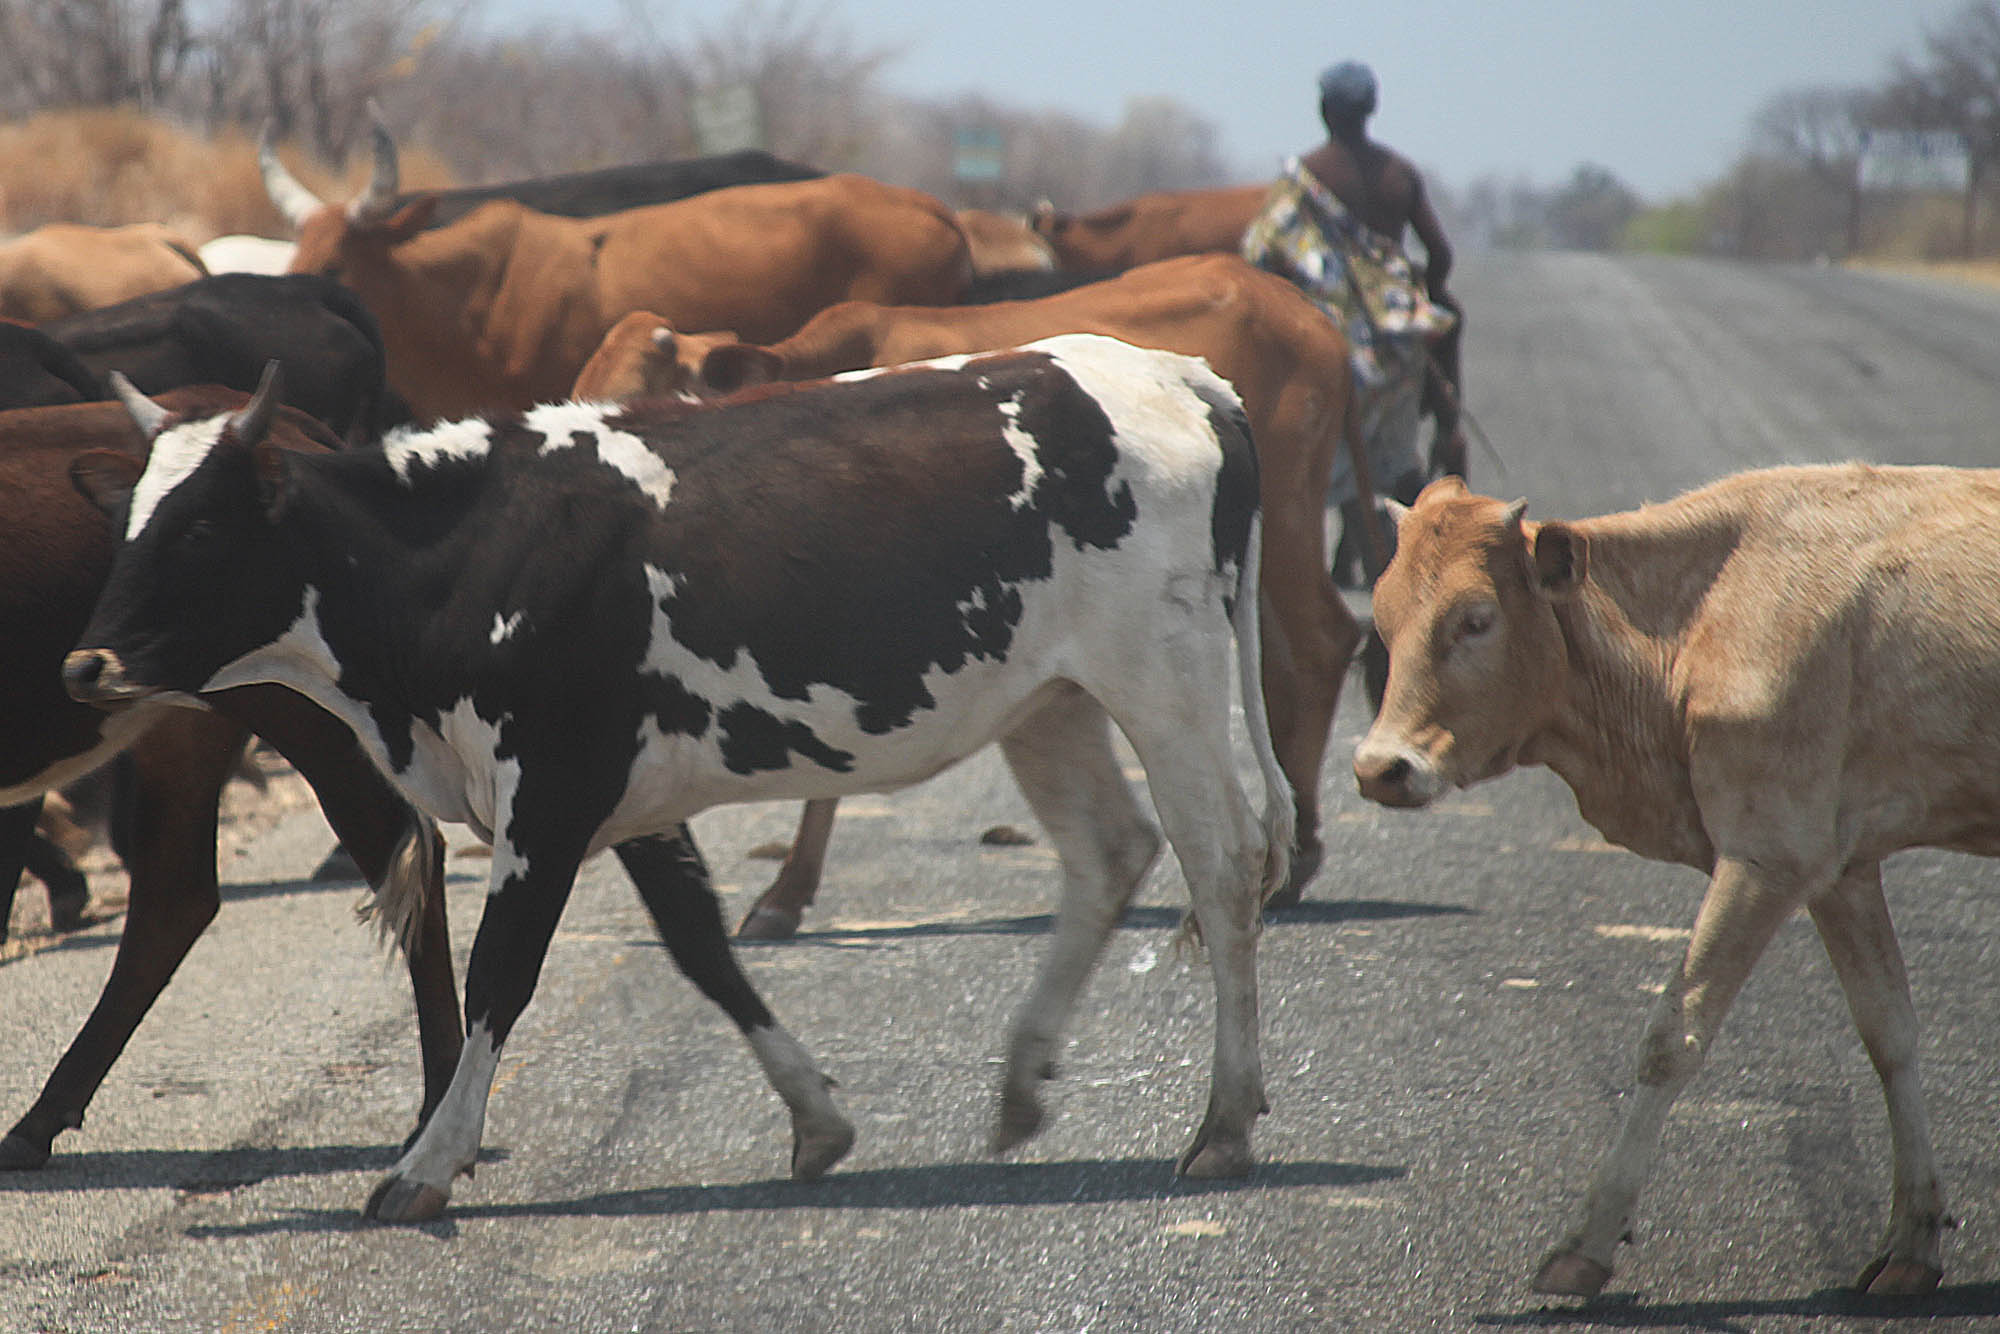 Herding the cows on the road to Victoria Falls